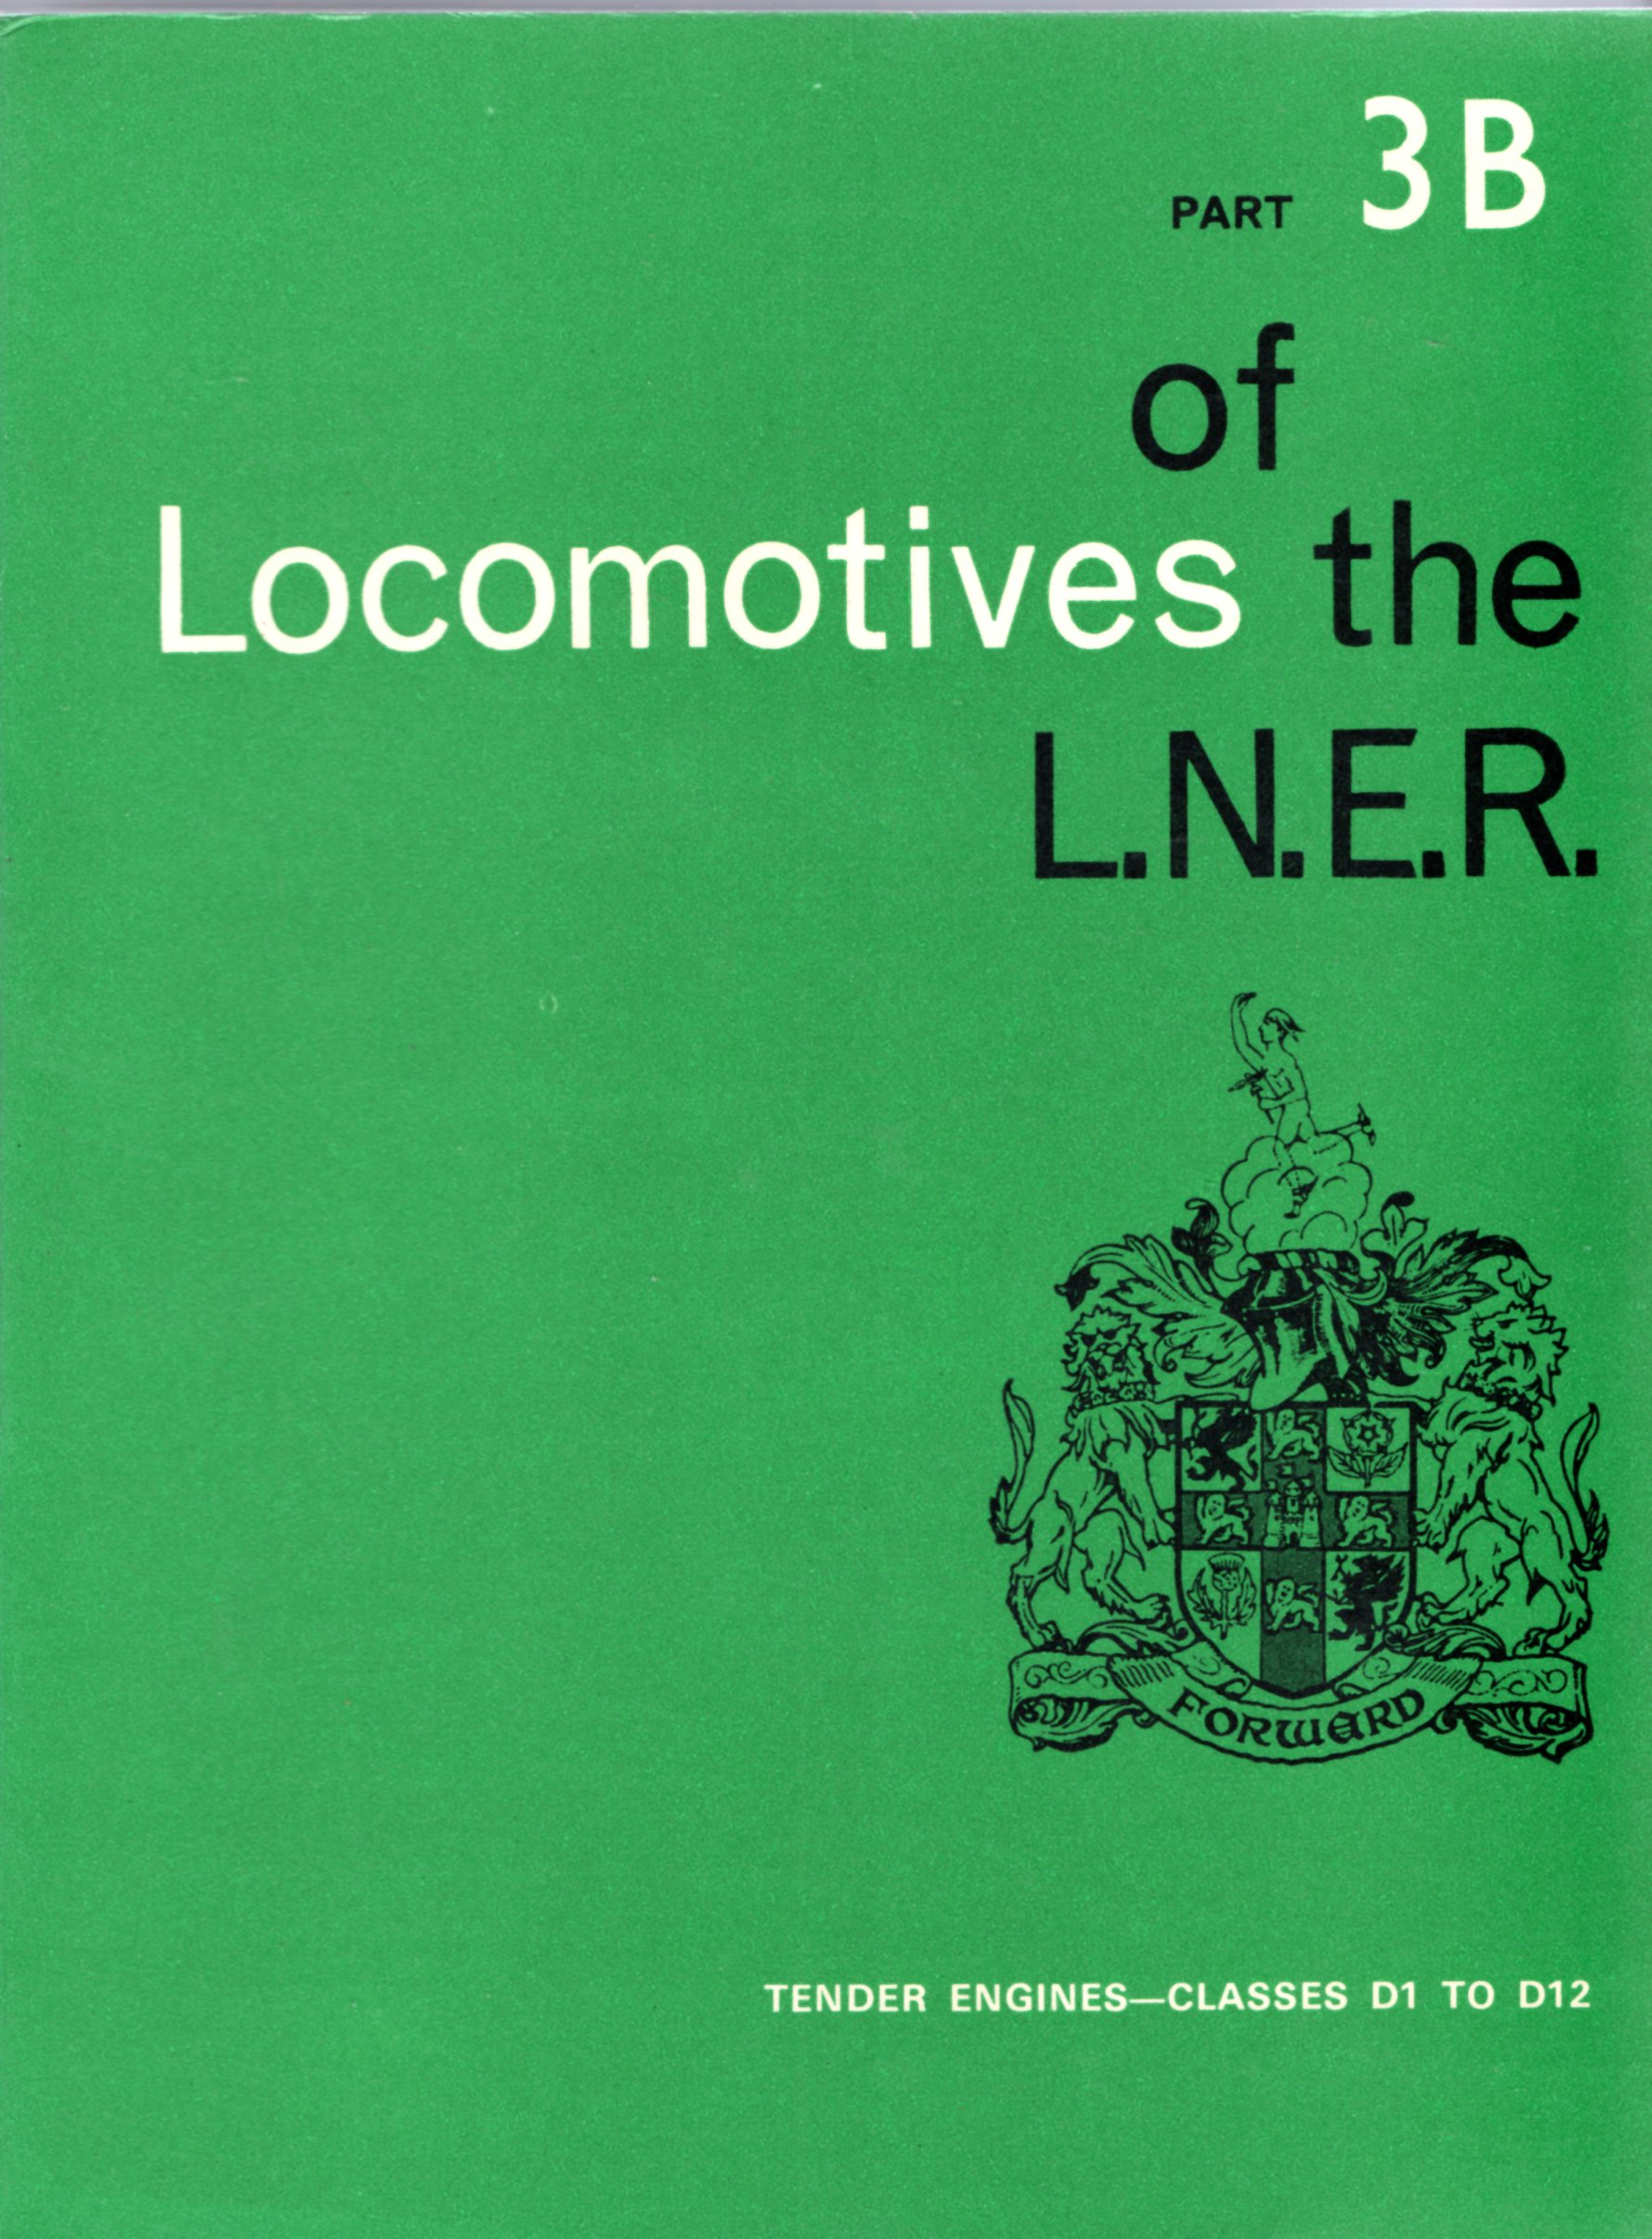 Image for Locomotives of the L.N.E.R. Part 3B: Tender engines - Classes D1 to D12